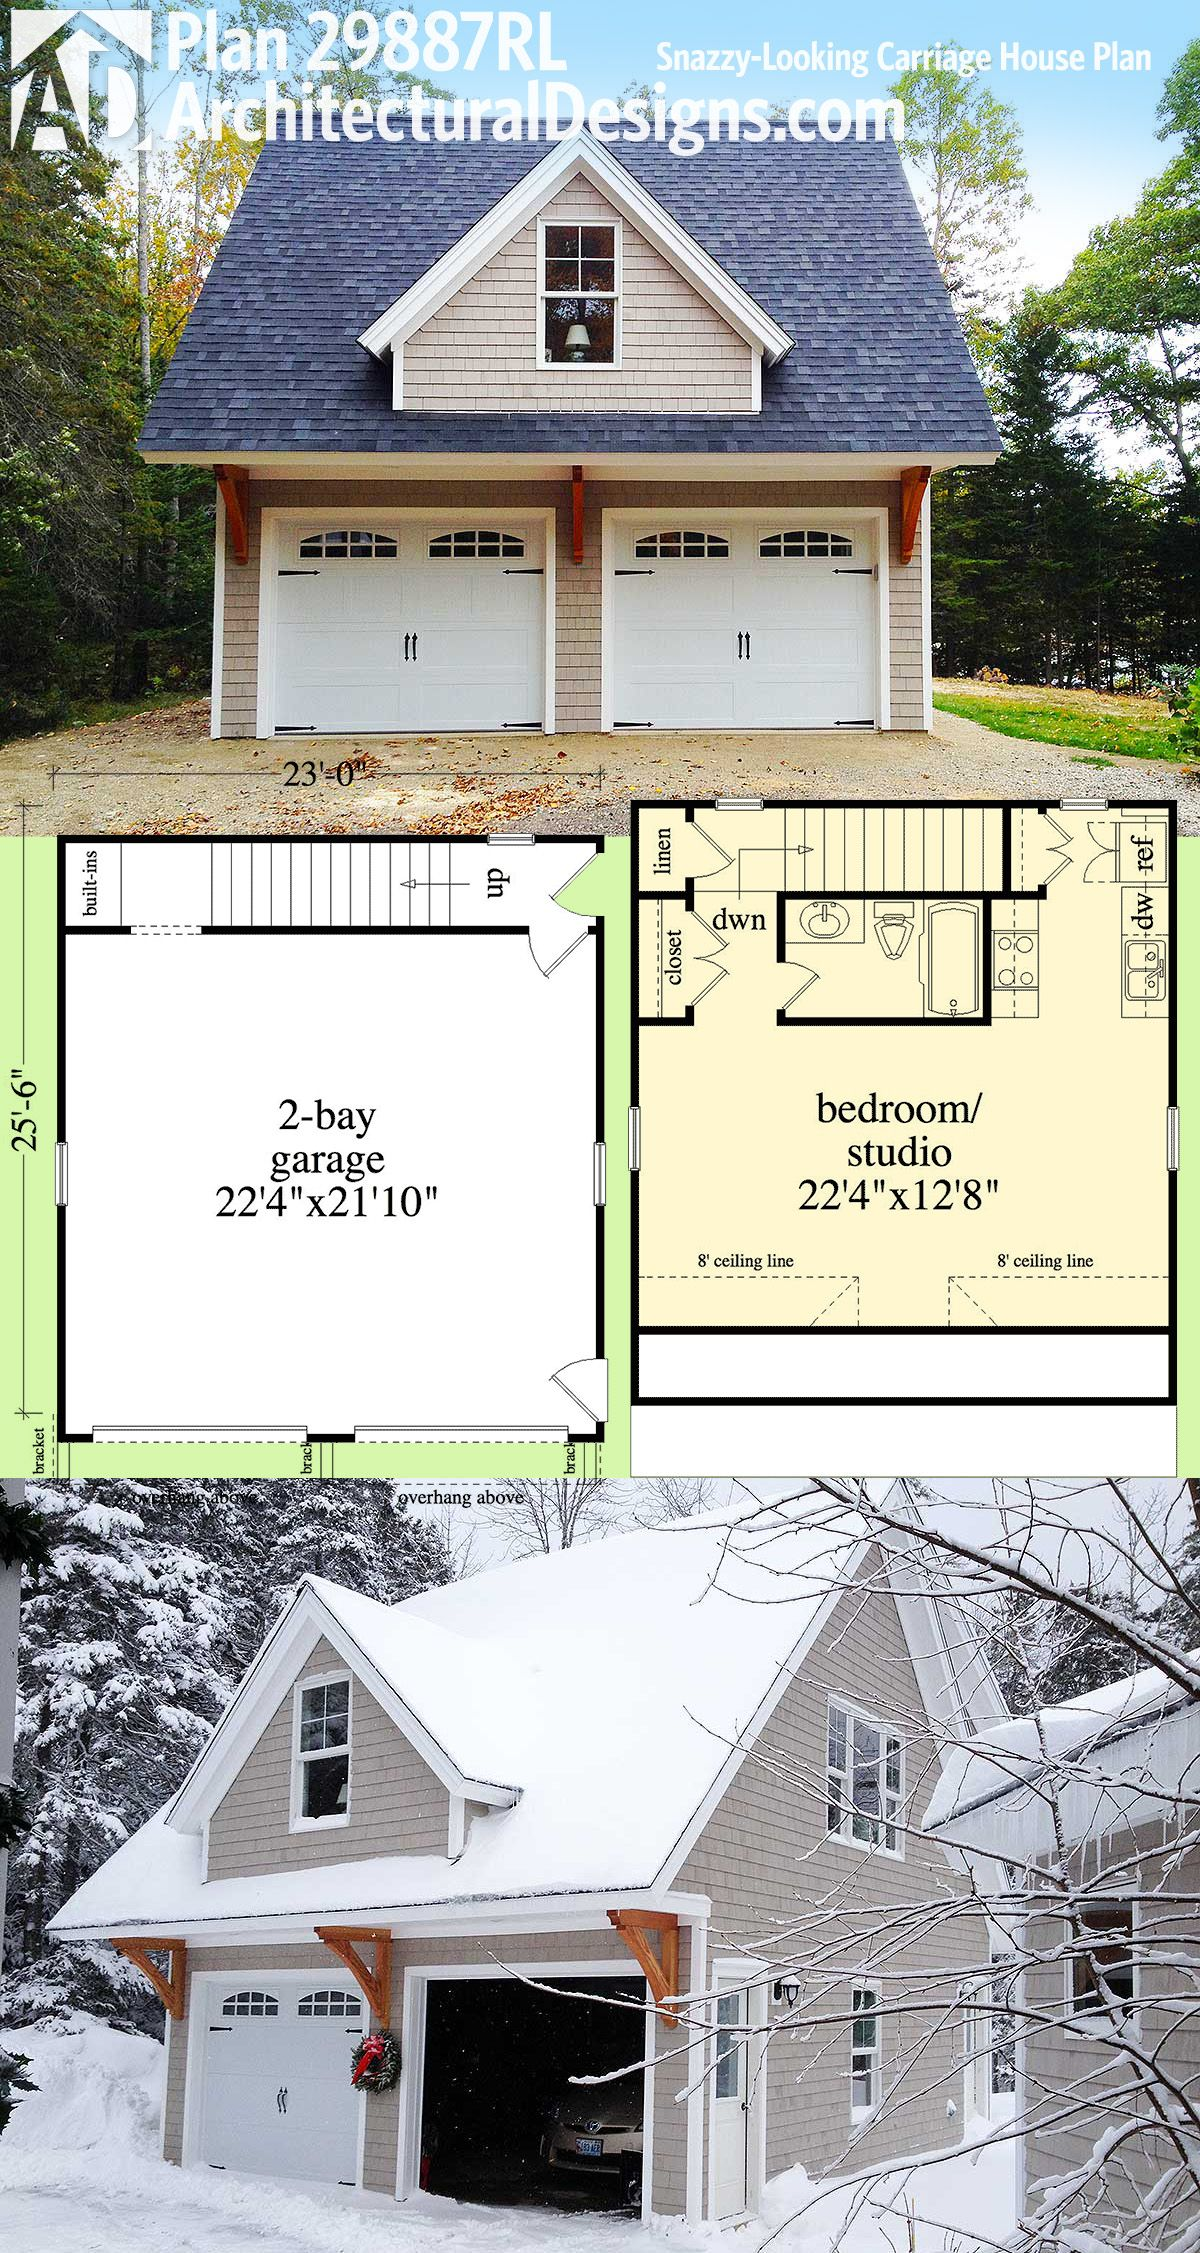 Plan 29887rl snazzy looking carriage house plan for 2 bay garage plans